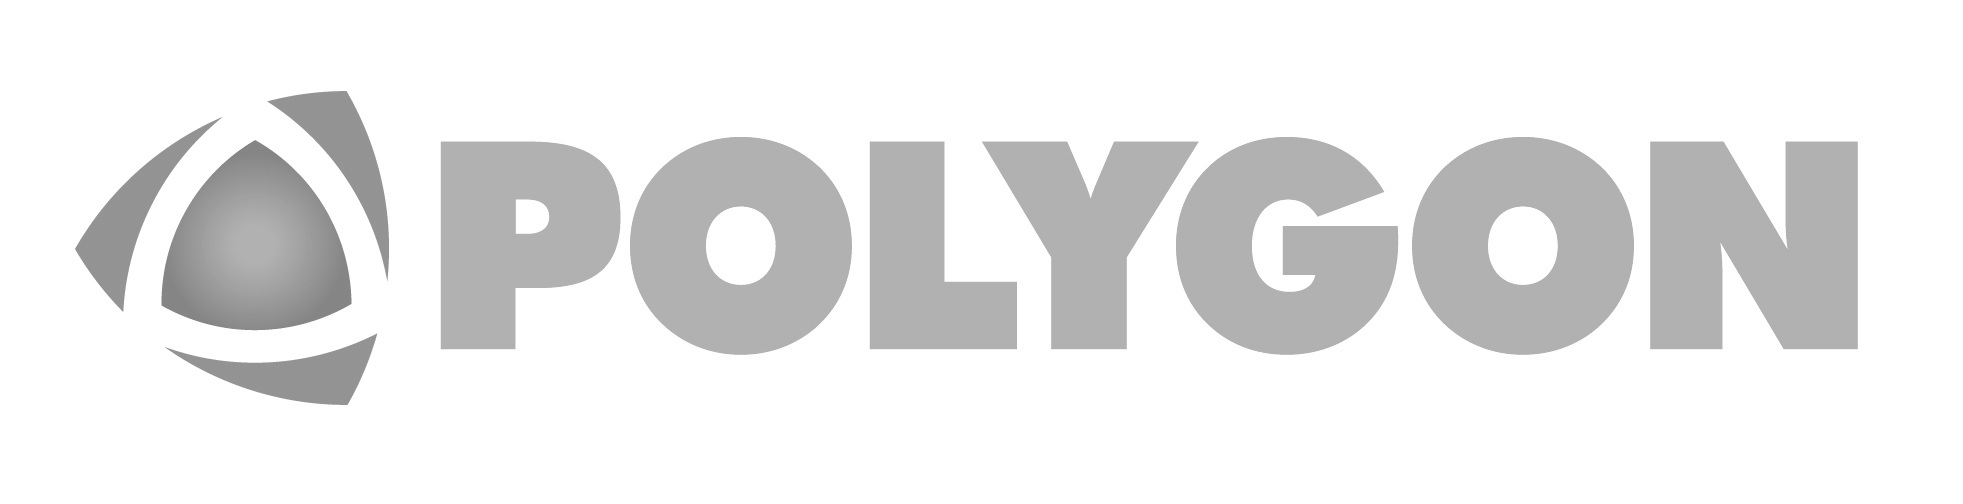 Polygon Logo Hi-Res.jpg